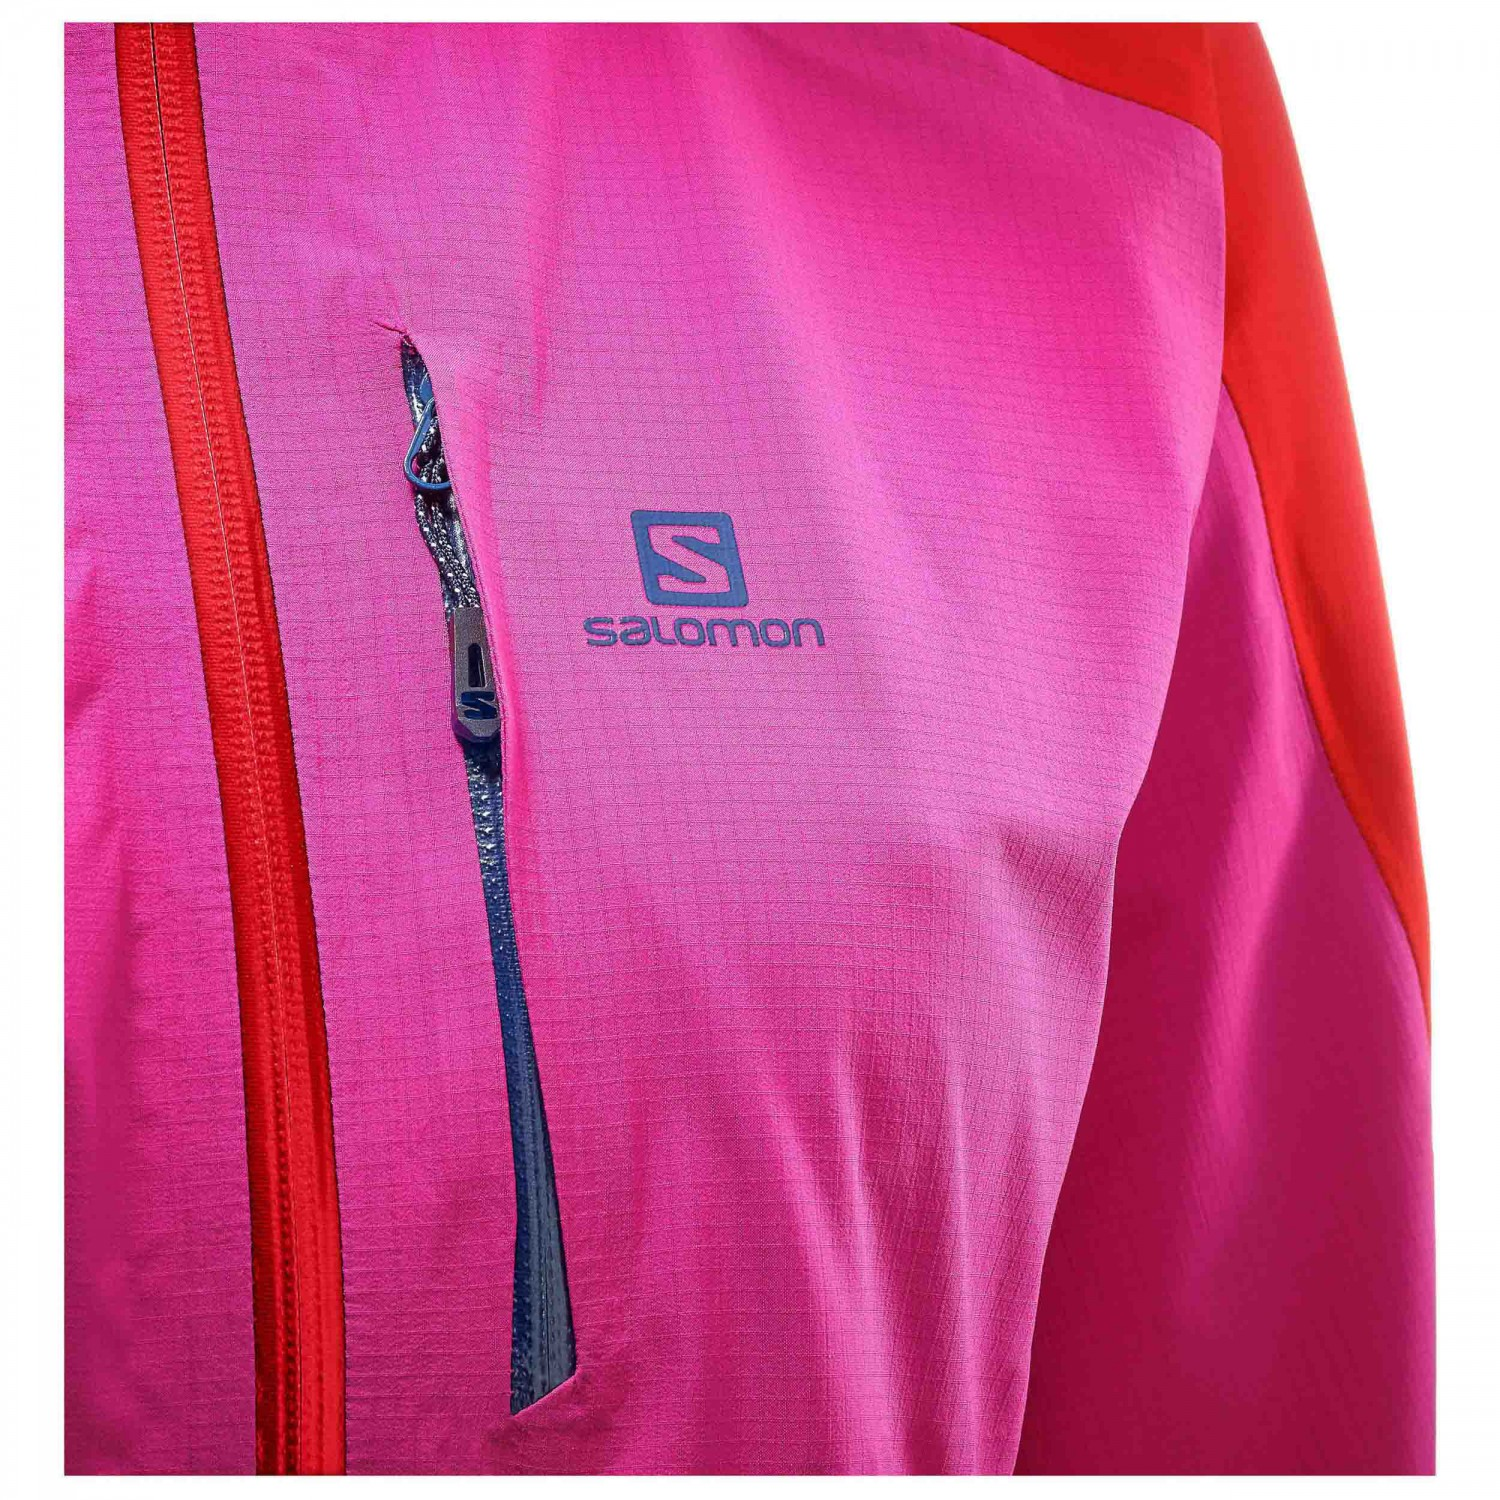 Only 3L Jacket SALOMON Womens One